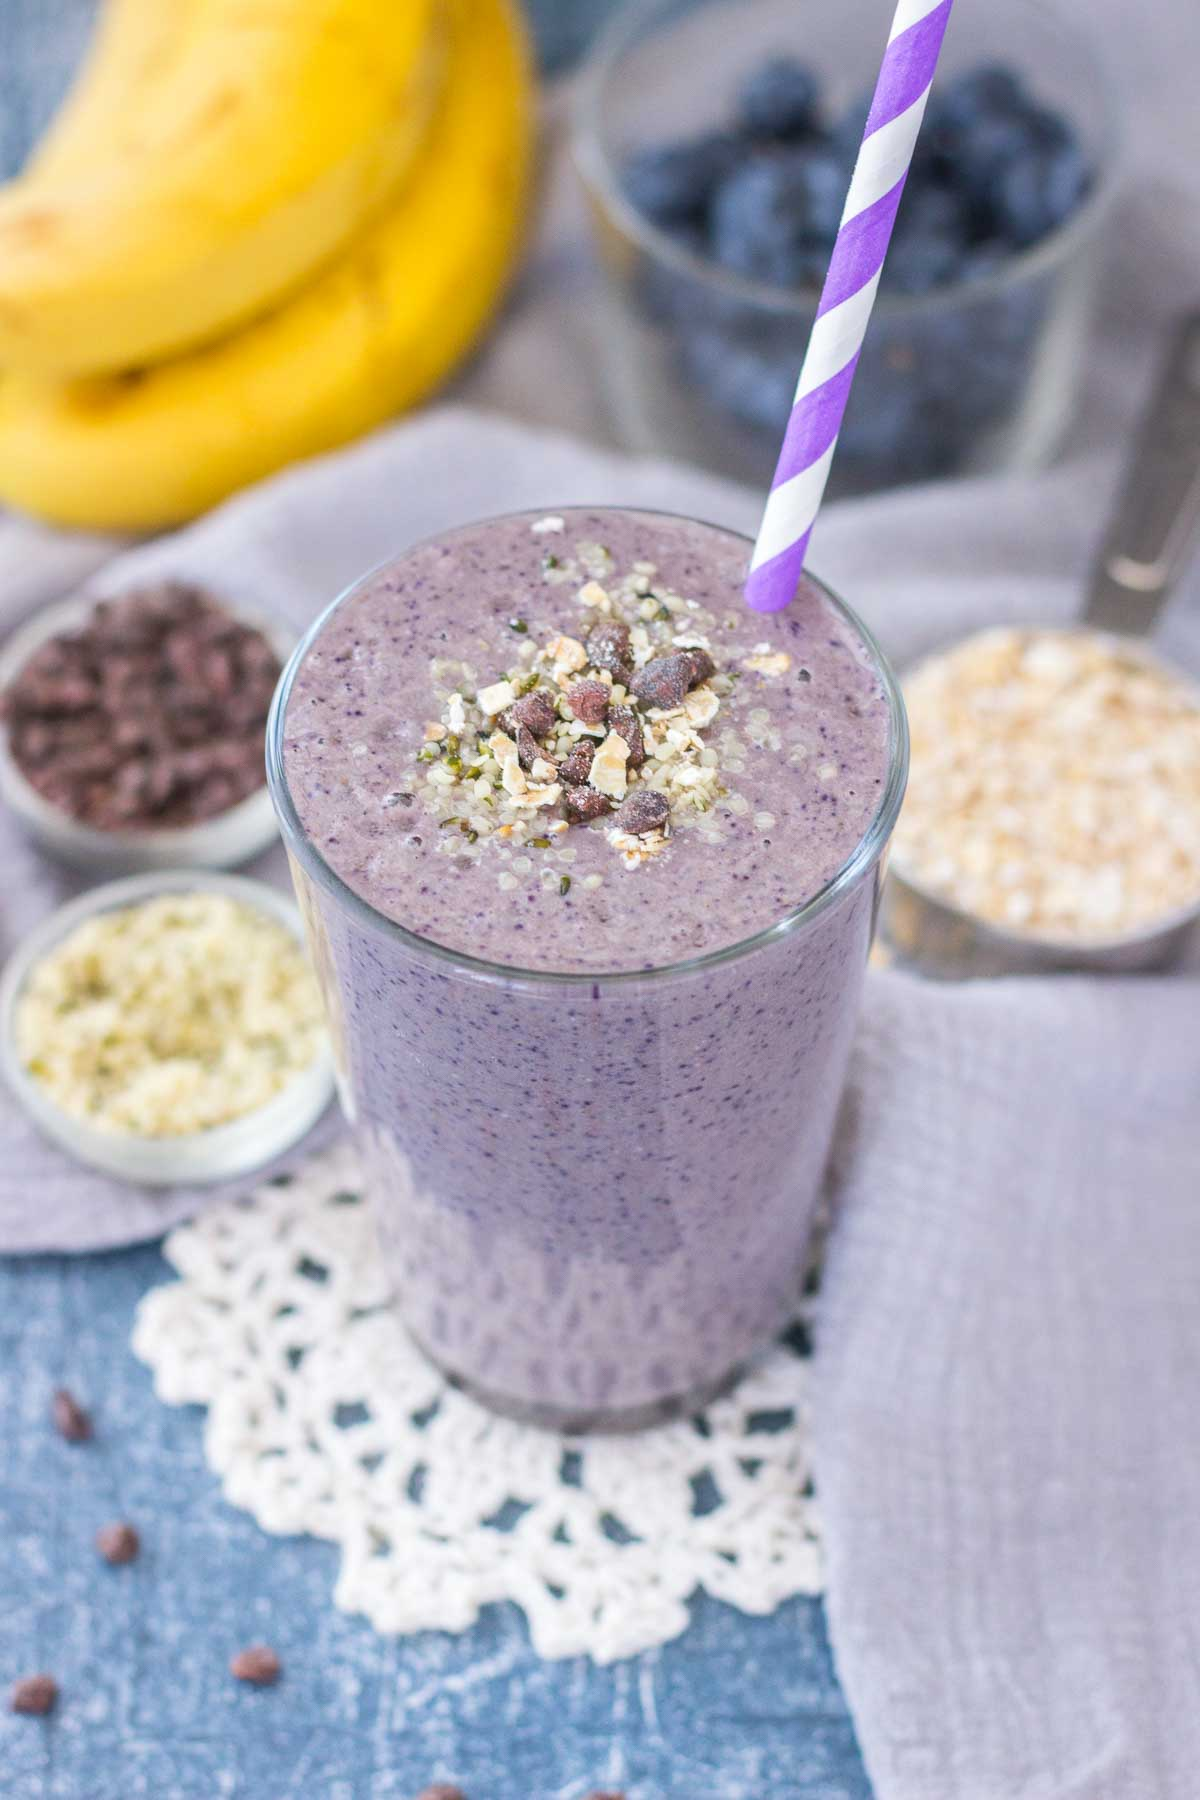 Healthy Blueberry Banana Smoothie with fresh fruits and oats served in a glass with a straw